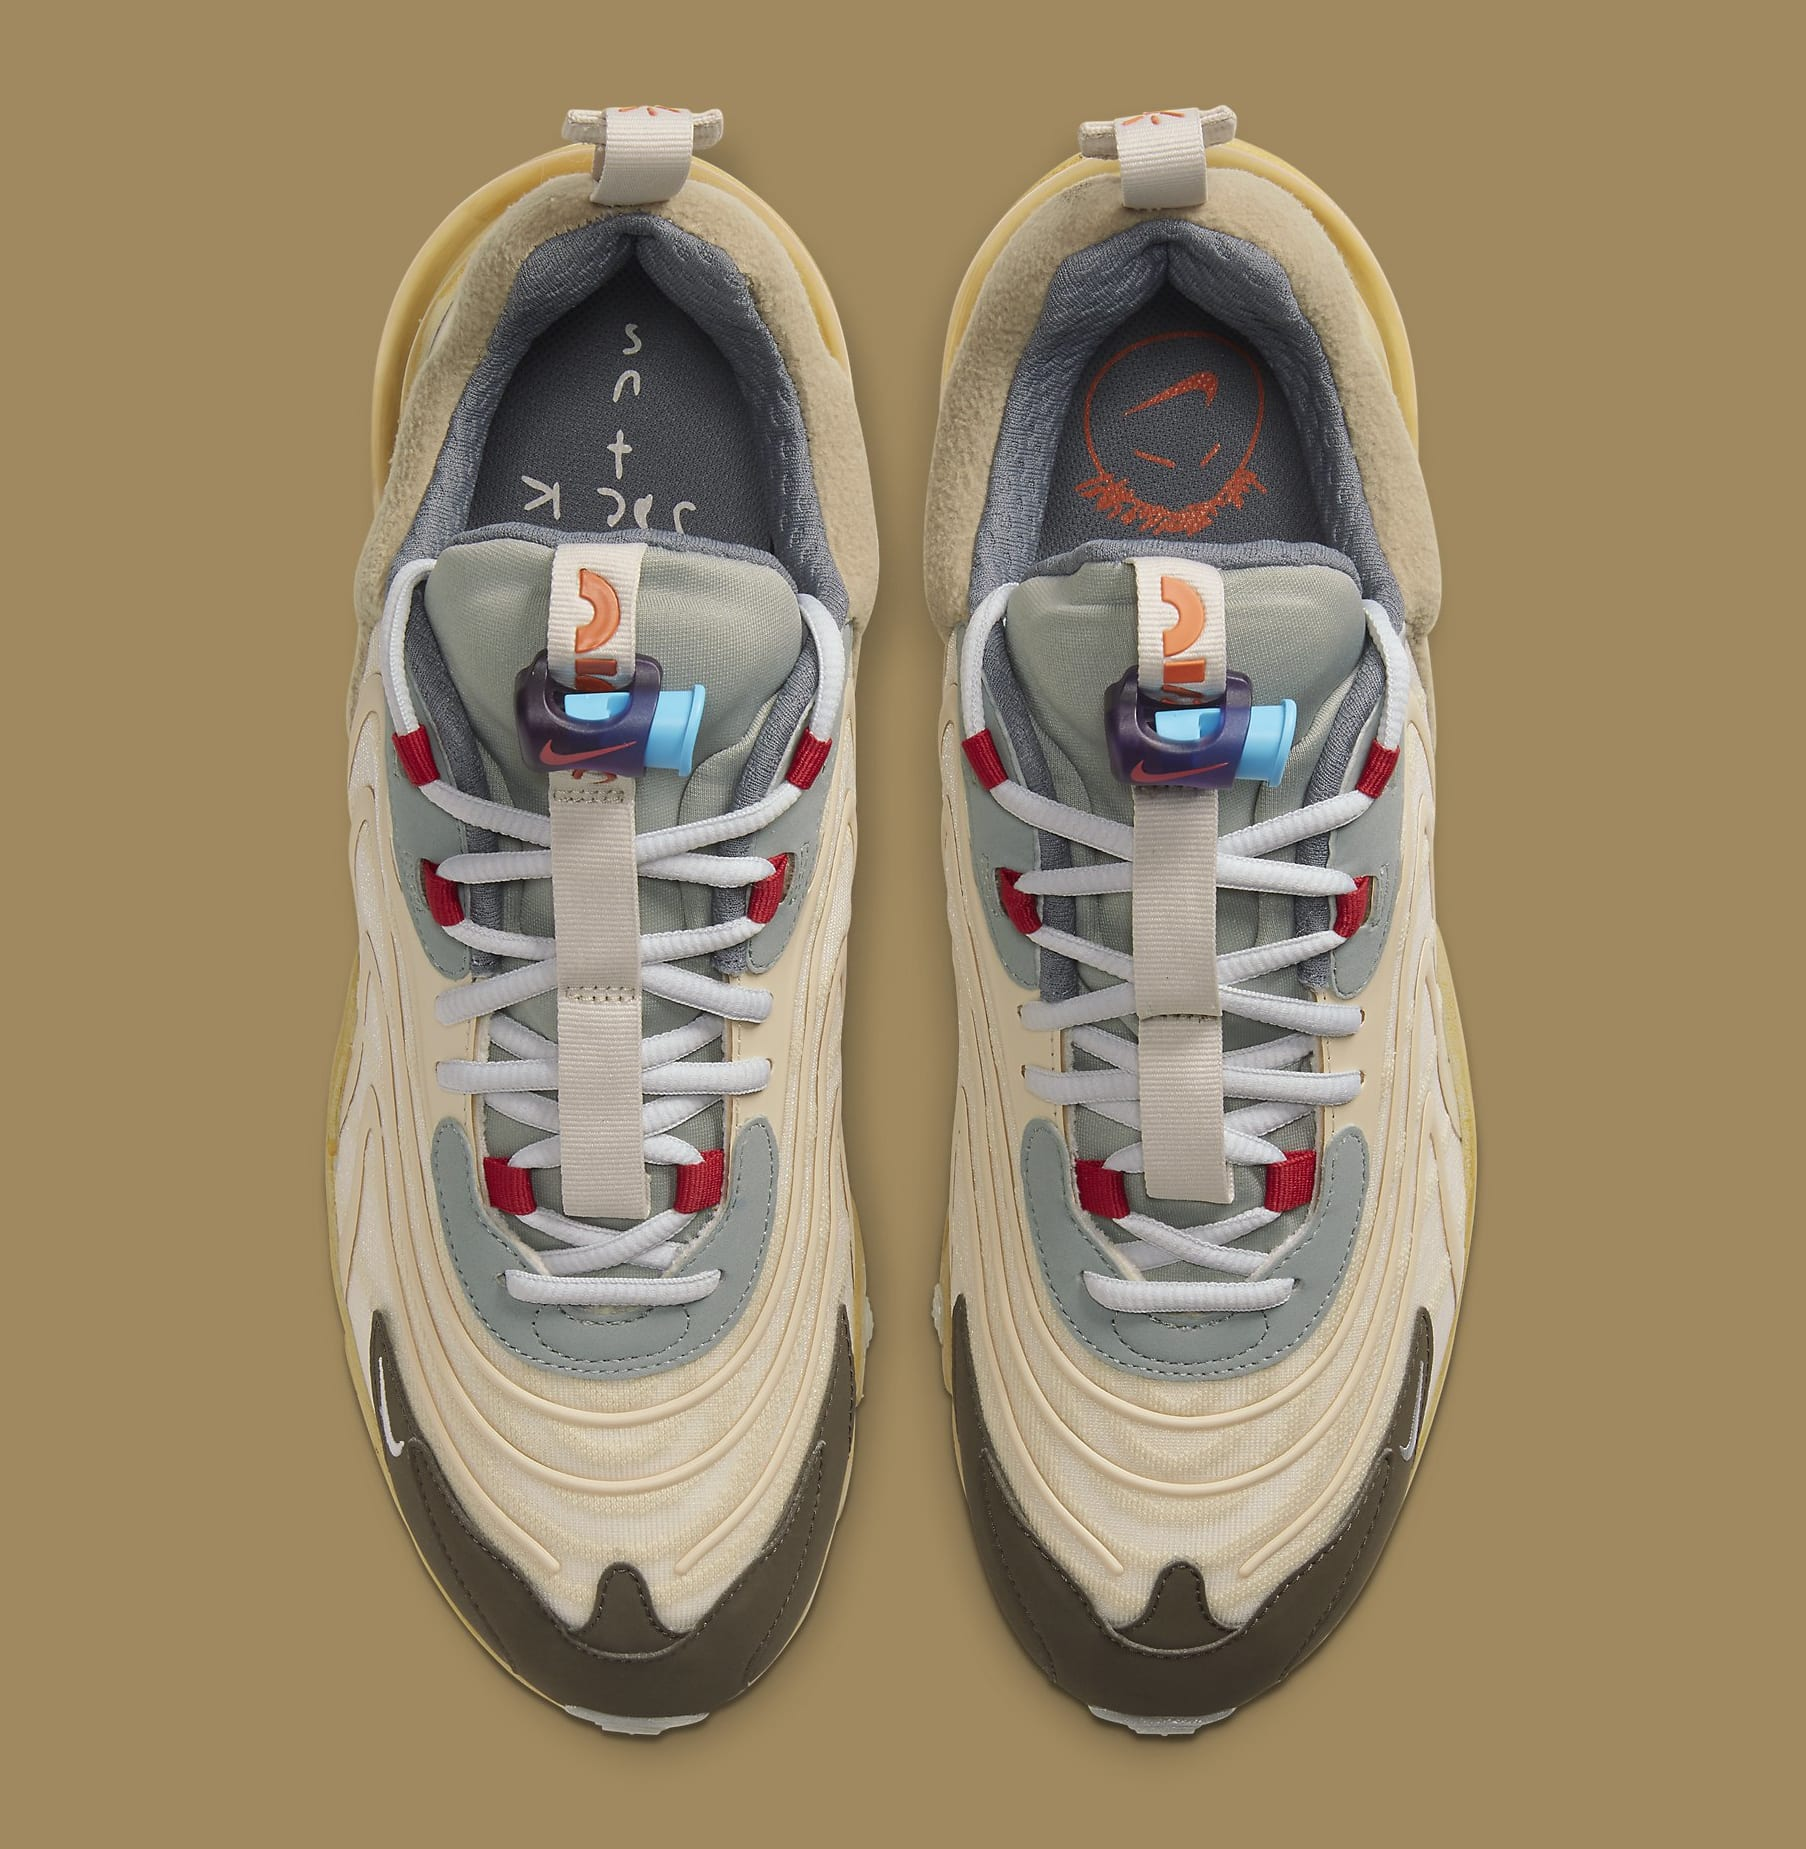 Travis Scott x Nike Air Max 270 React ENG CT2864-200 Top